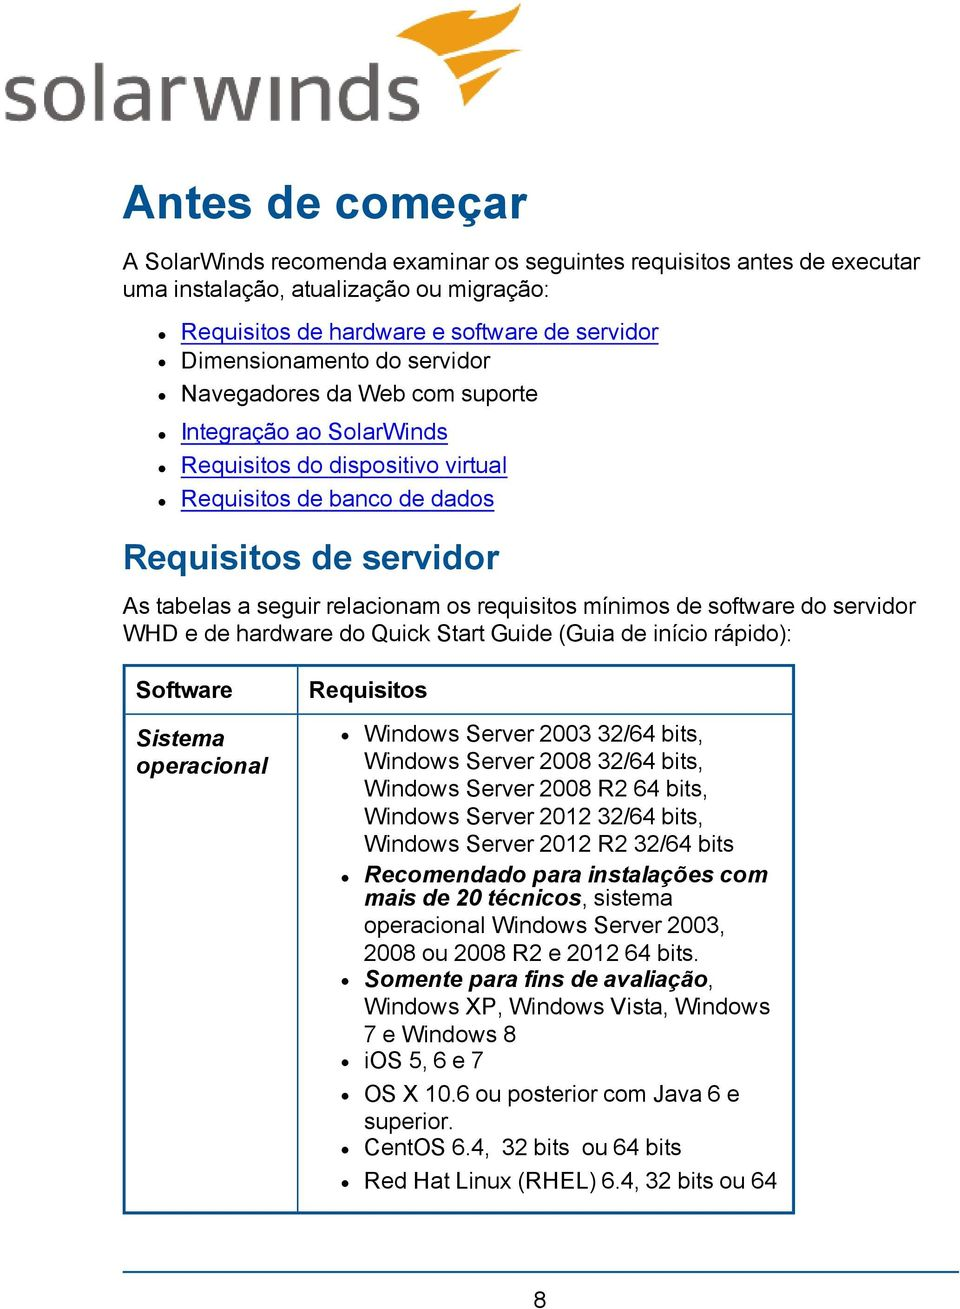 mínimos de software do servidor WHD e de hardware do Quick Start Guide (Guia de início rápido): Software Sistema operacional Requisitos Windows Server 2003 32/64 bits, Windows Server 2008 32/64 bits,